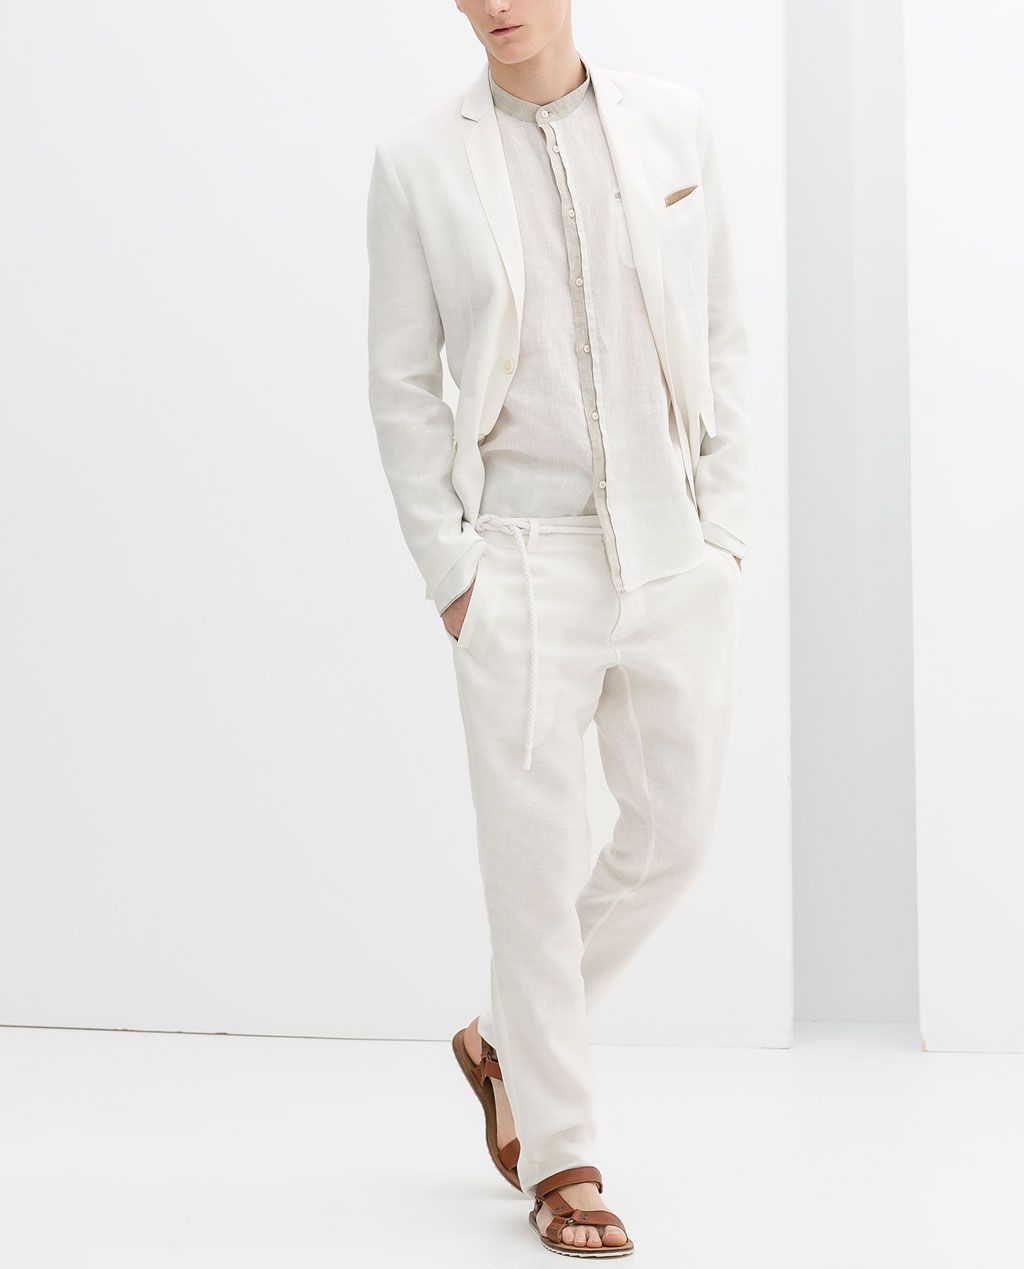 00c896f26f0c3 ZARA - MAN - BASIC LINEN SUIT